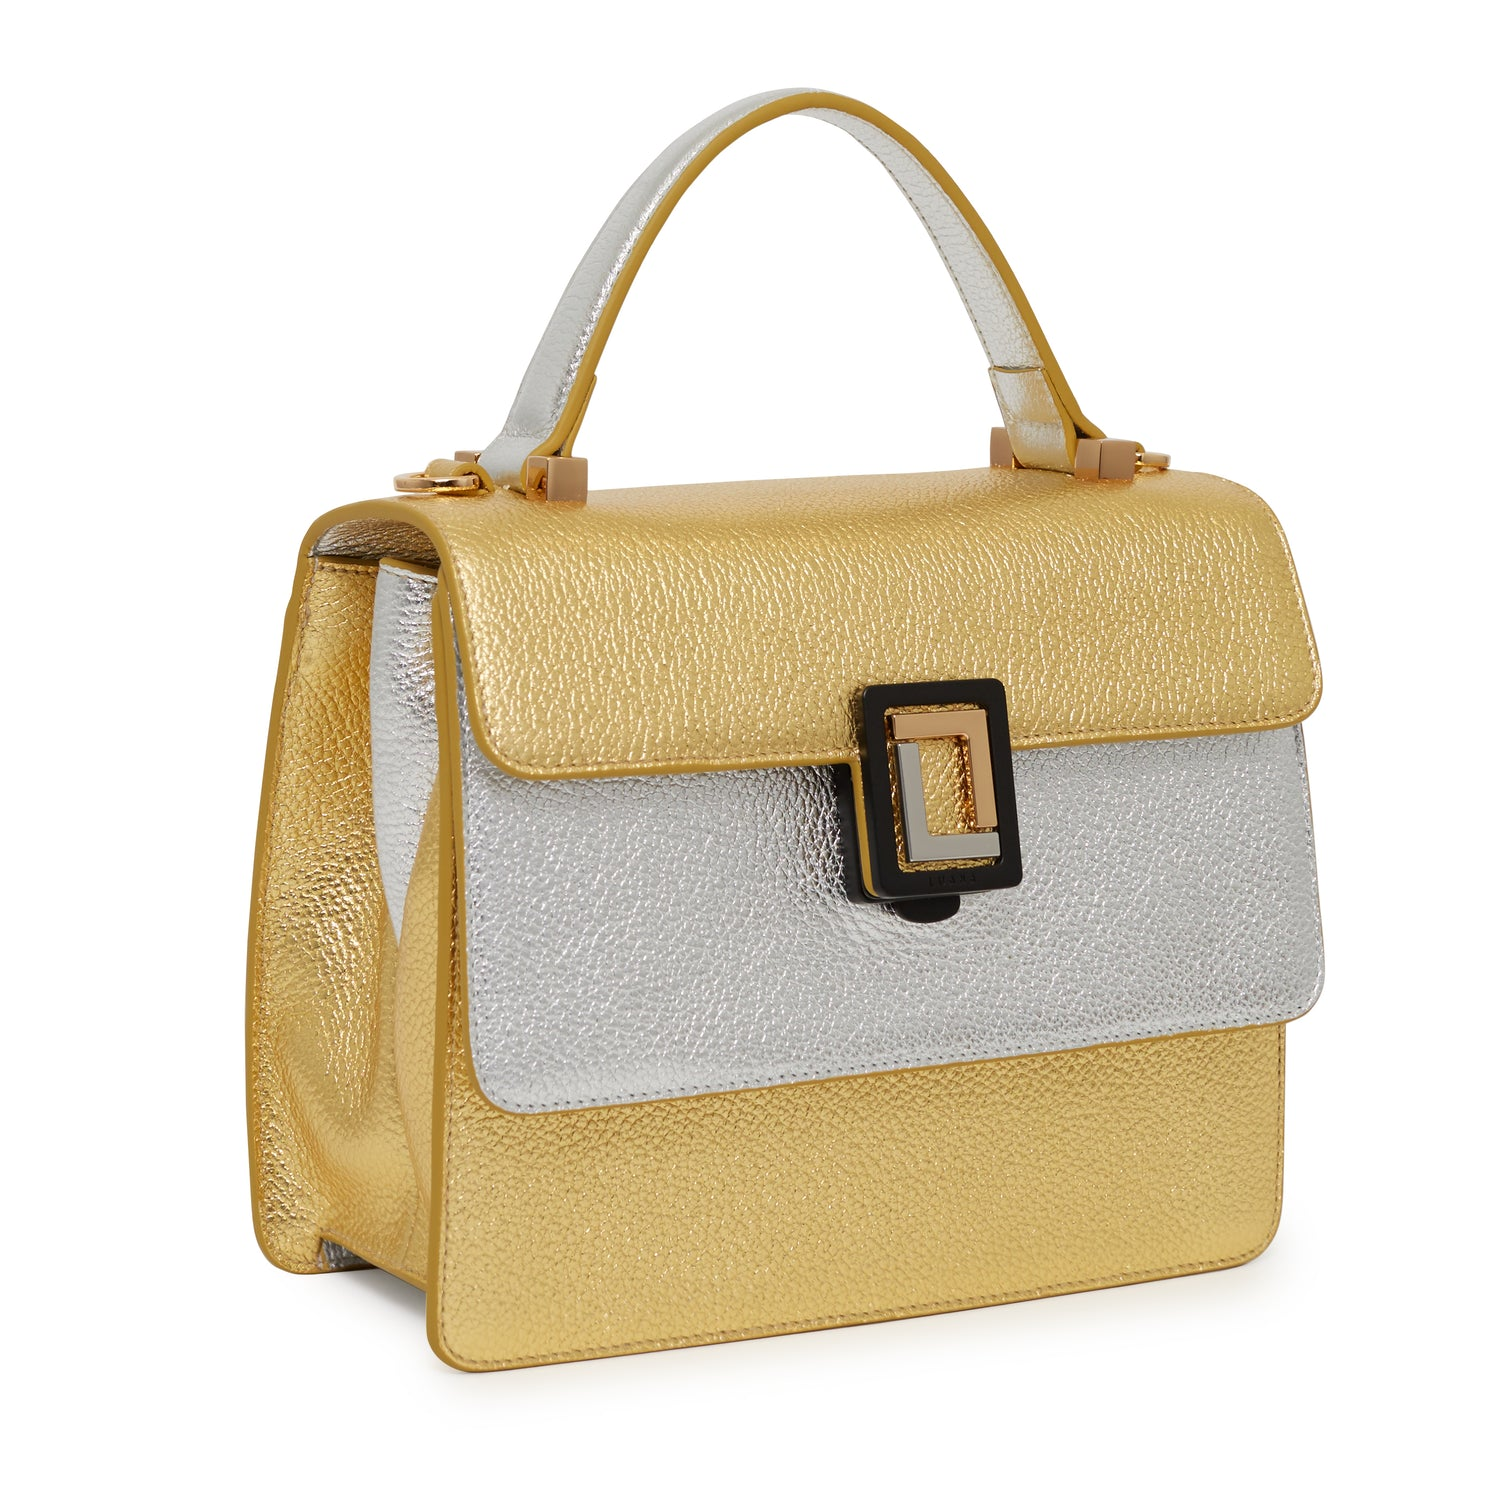 Maria Satchel in Gold/Silver